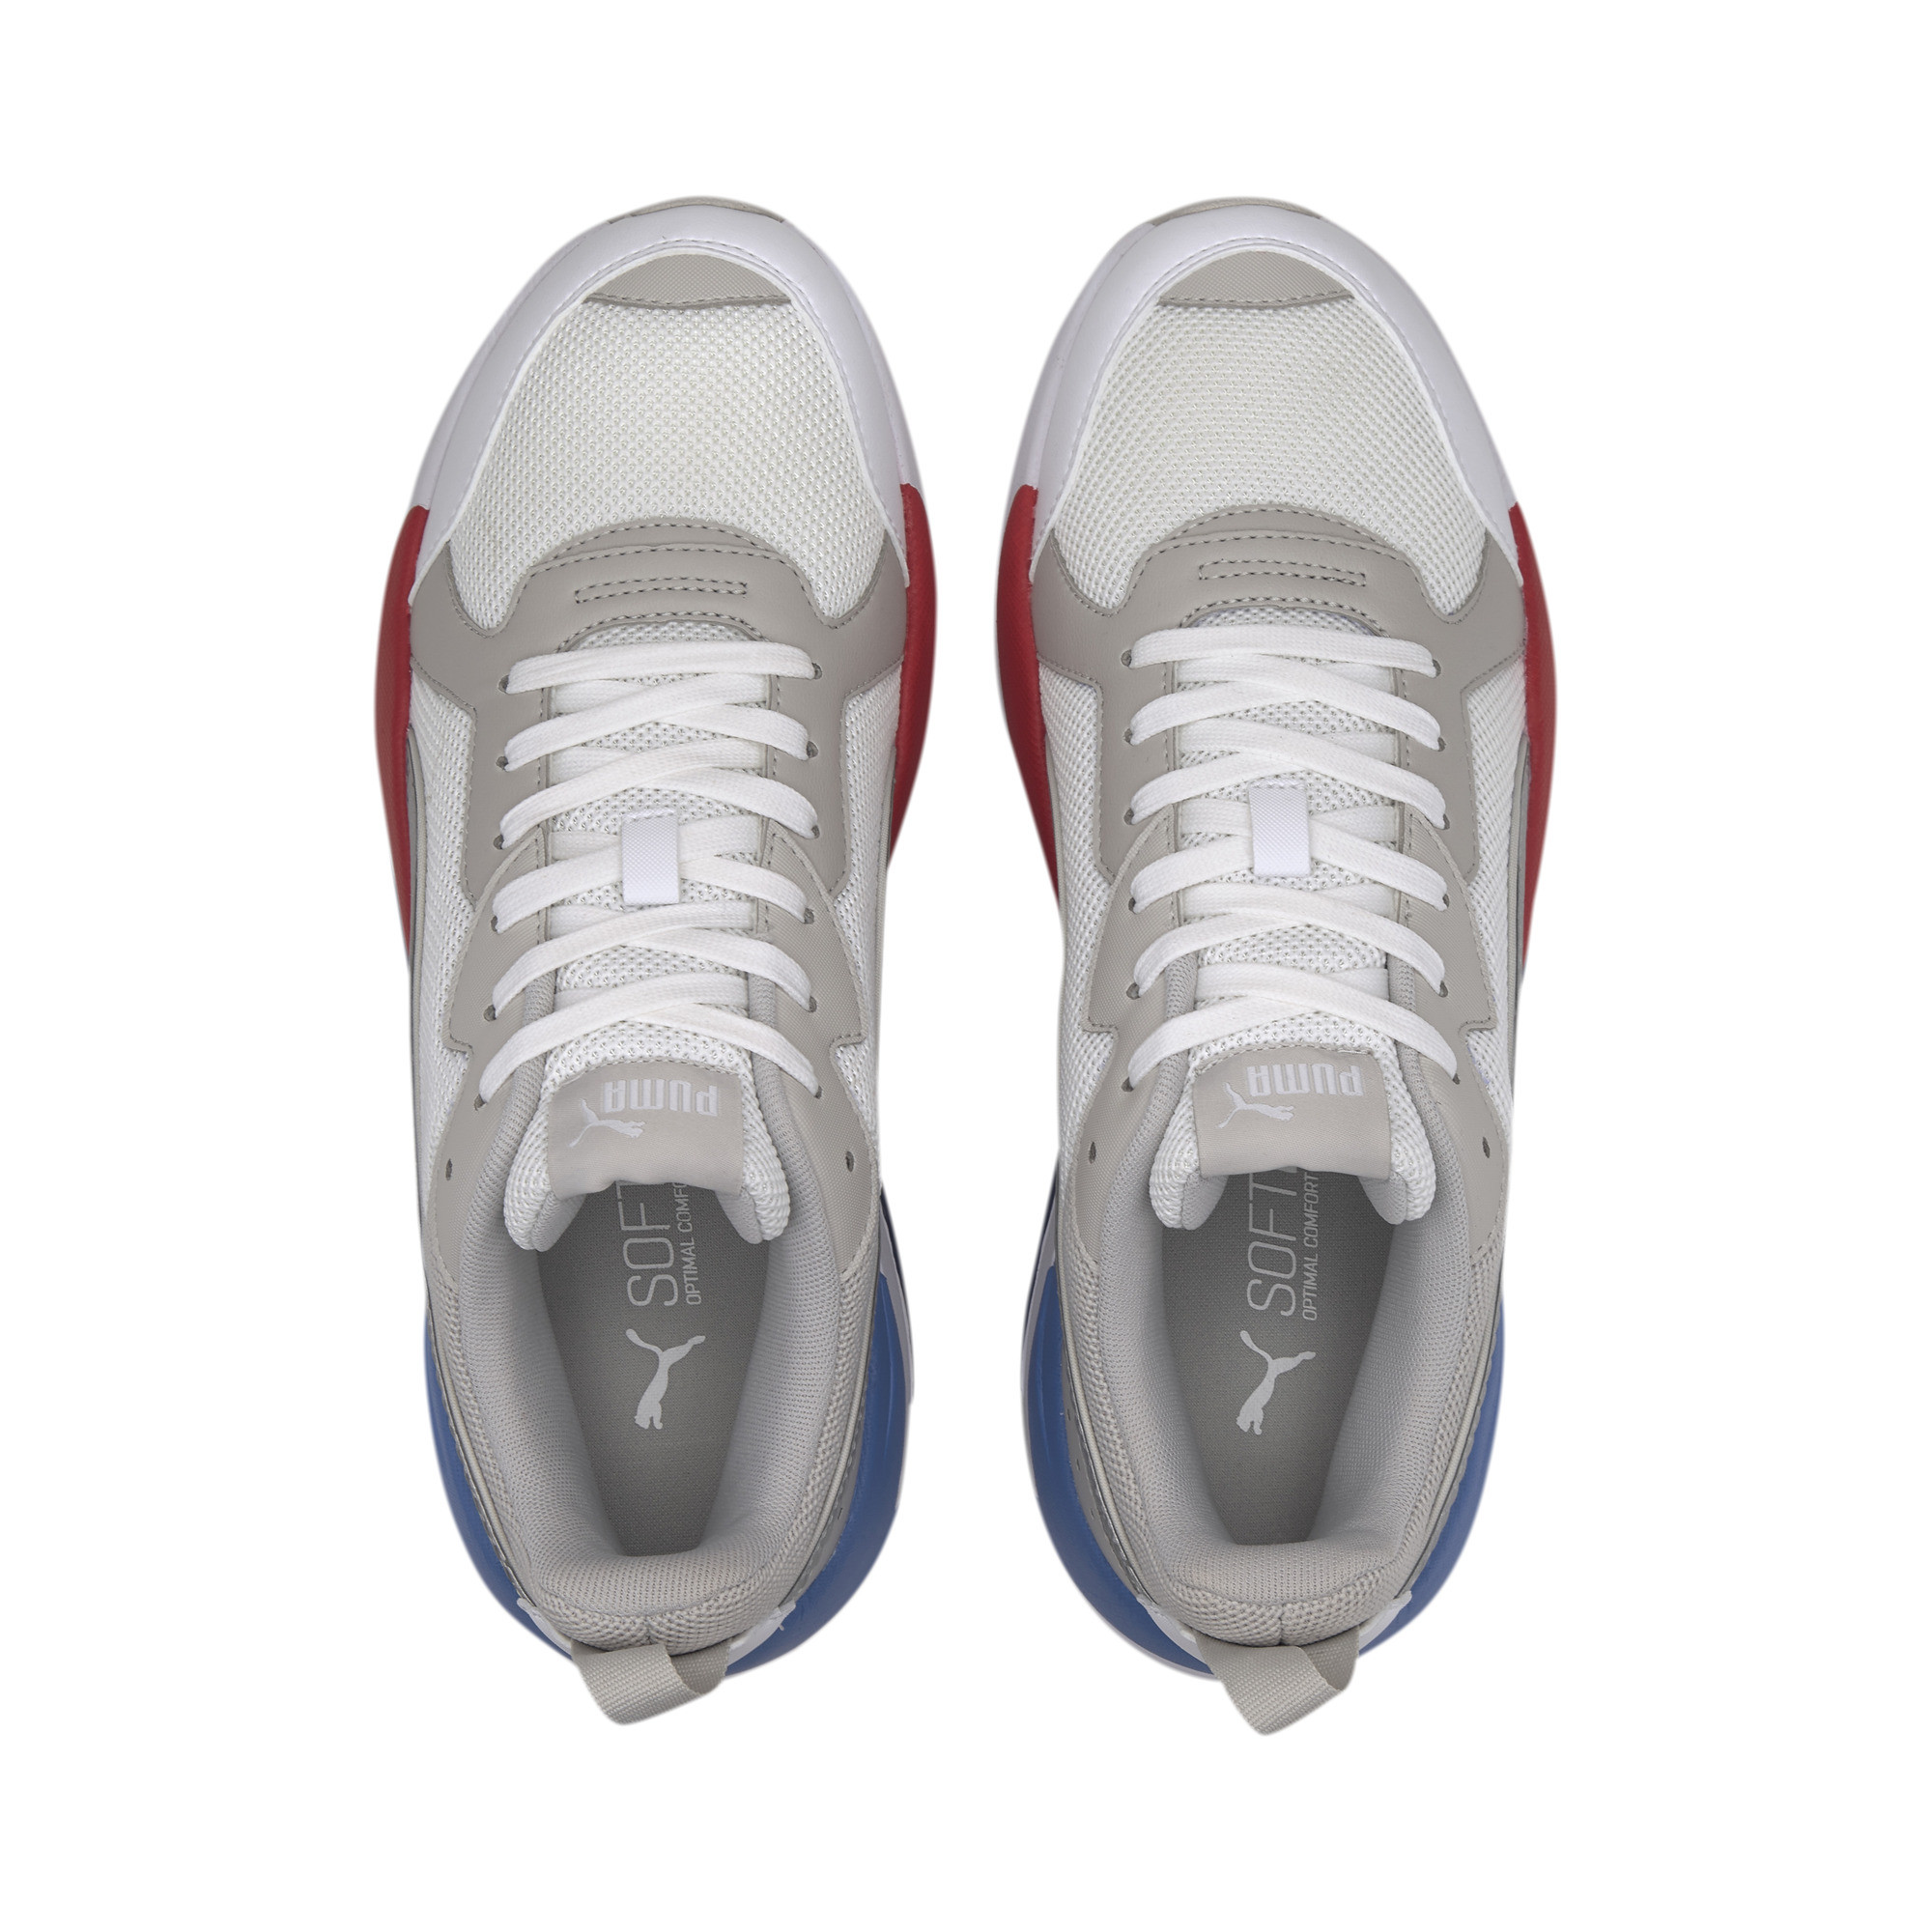 PUMA-Men-039-s-BMW-M-Motorsport-X-RAY-Sneakers thumbnail 16